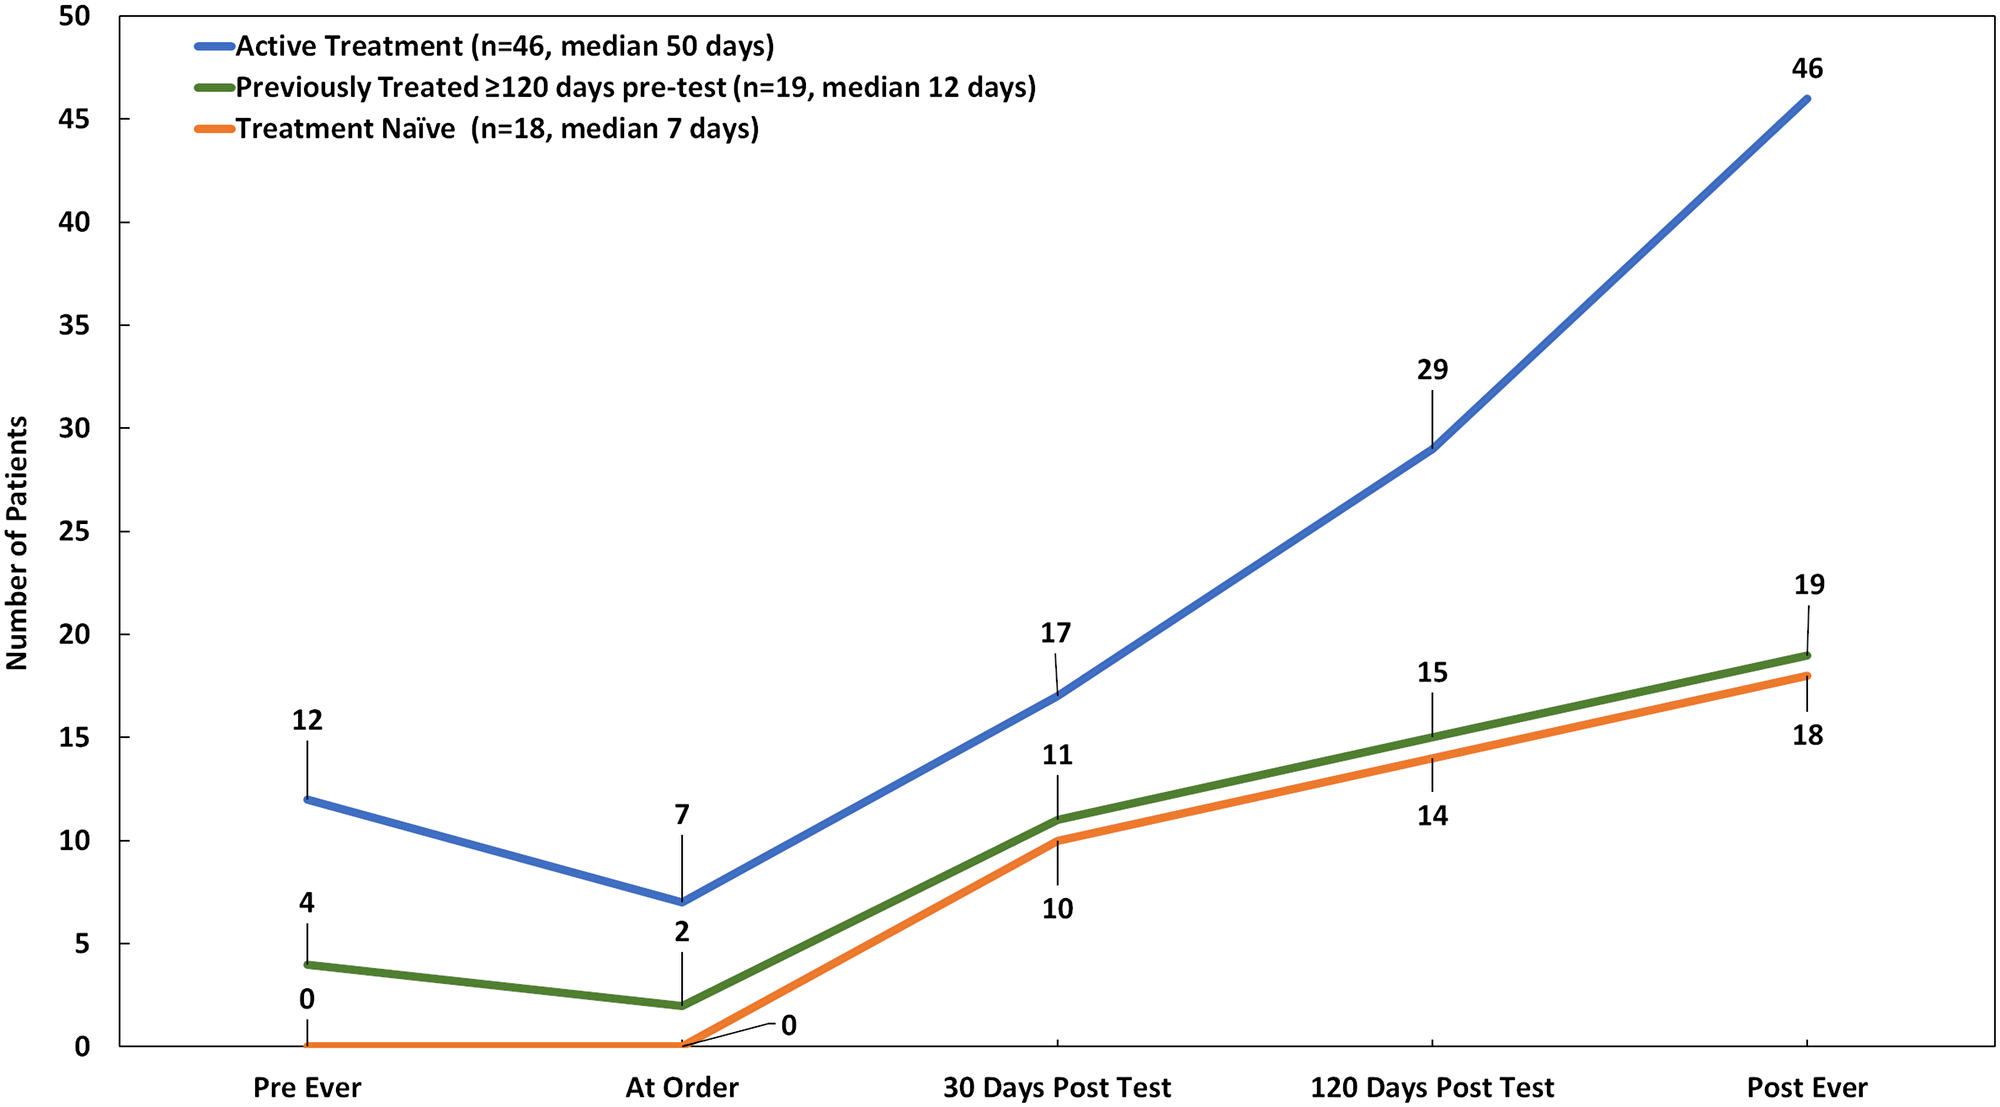 Targeted therapy uptake over time by treatment history status at the time of order (n = 83).